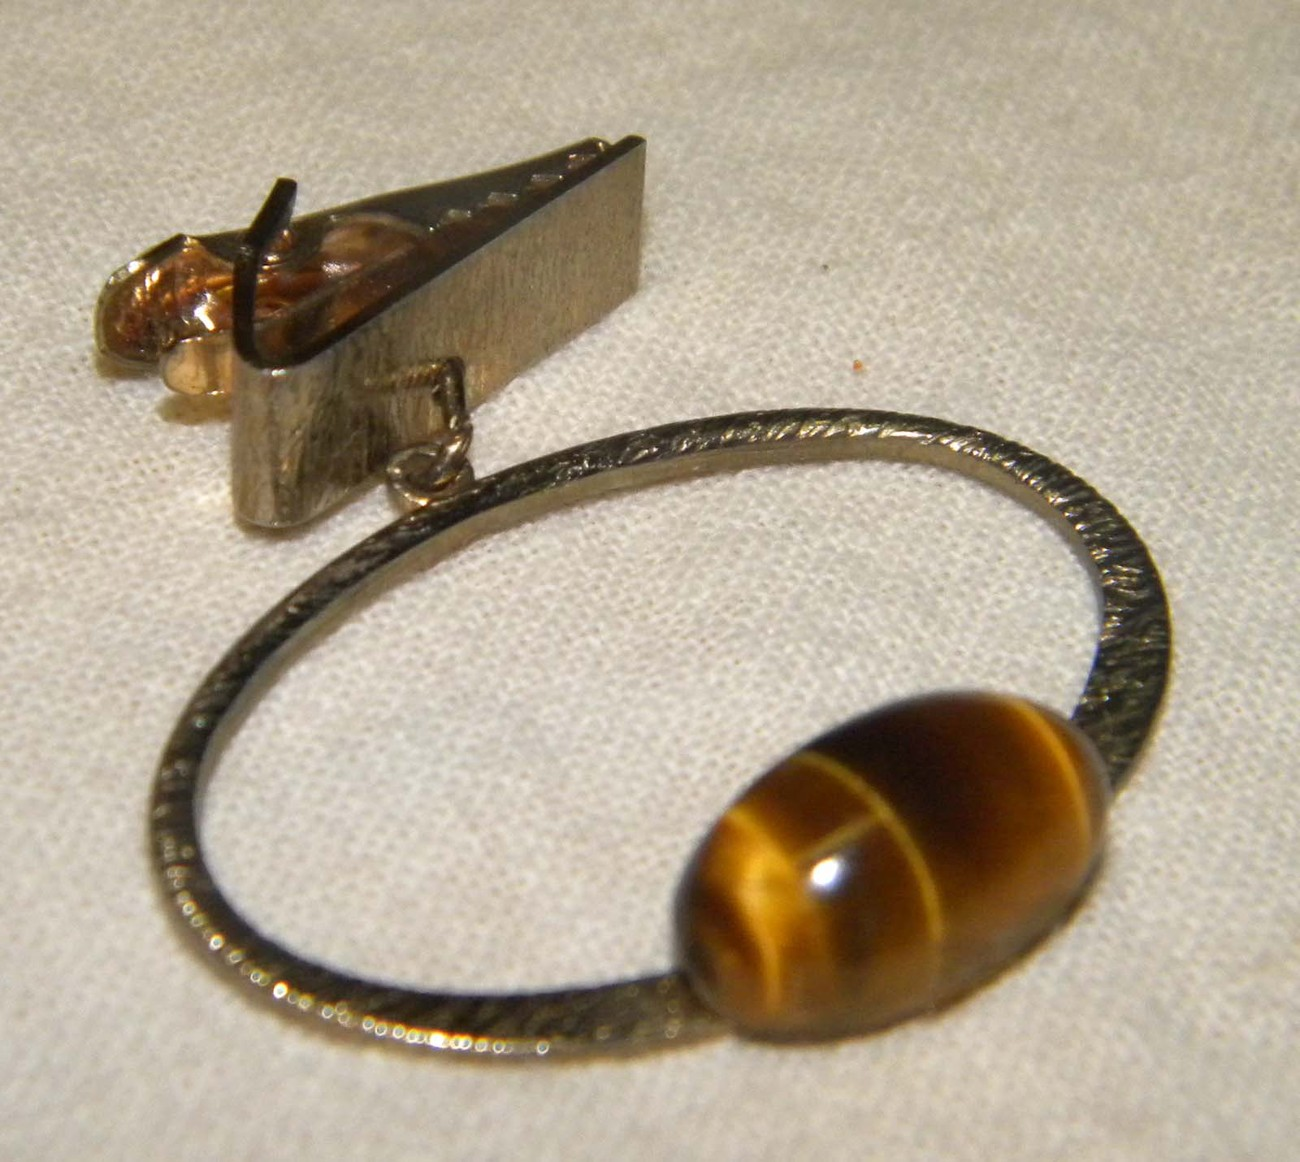 Vintage tie clasp 1/2 inch amber stone on silver colored oval ring